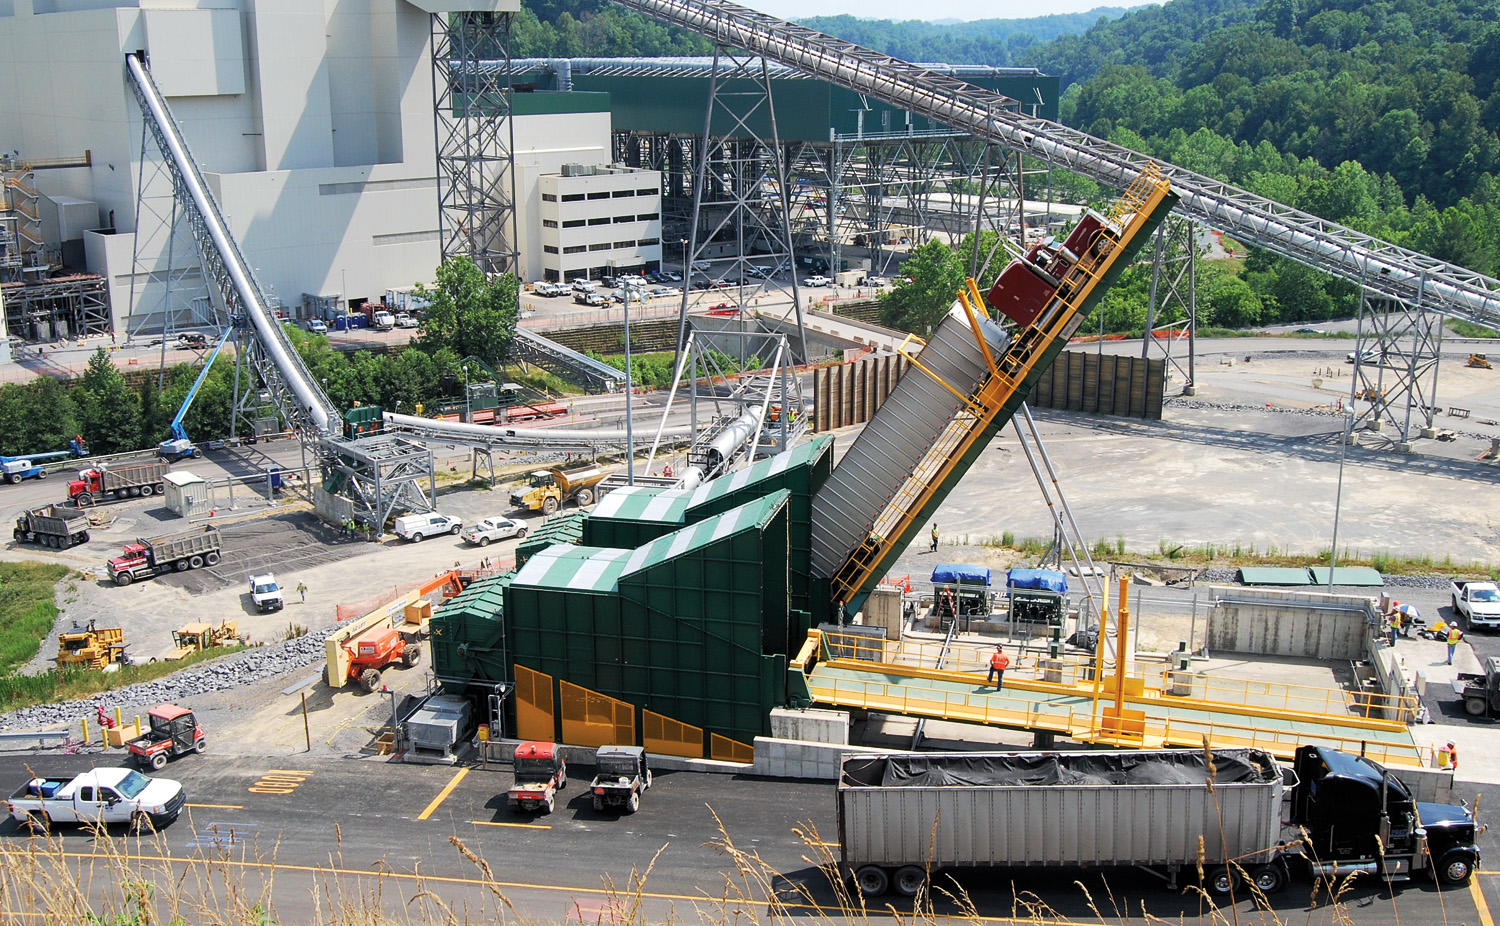 A wood tipper delivers wood waste to the Virginia City circulating fluidized bed plant, which can burn up to 20 percent biomass along with coal.